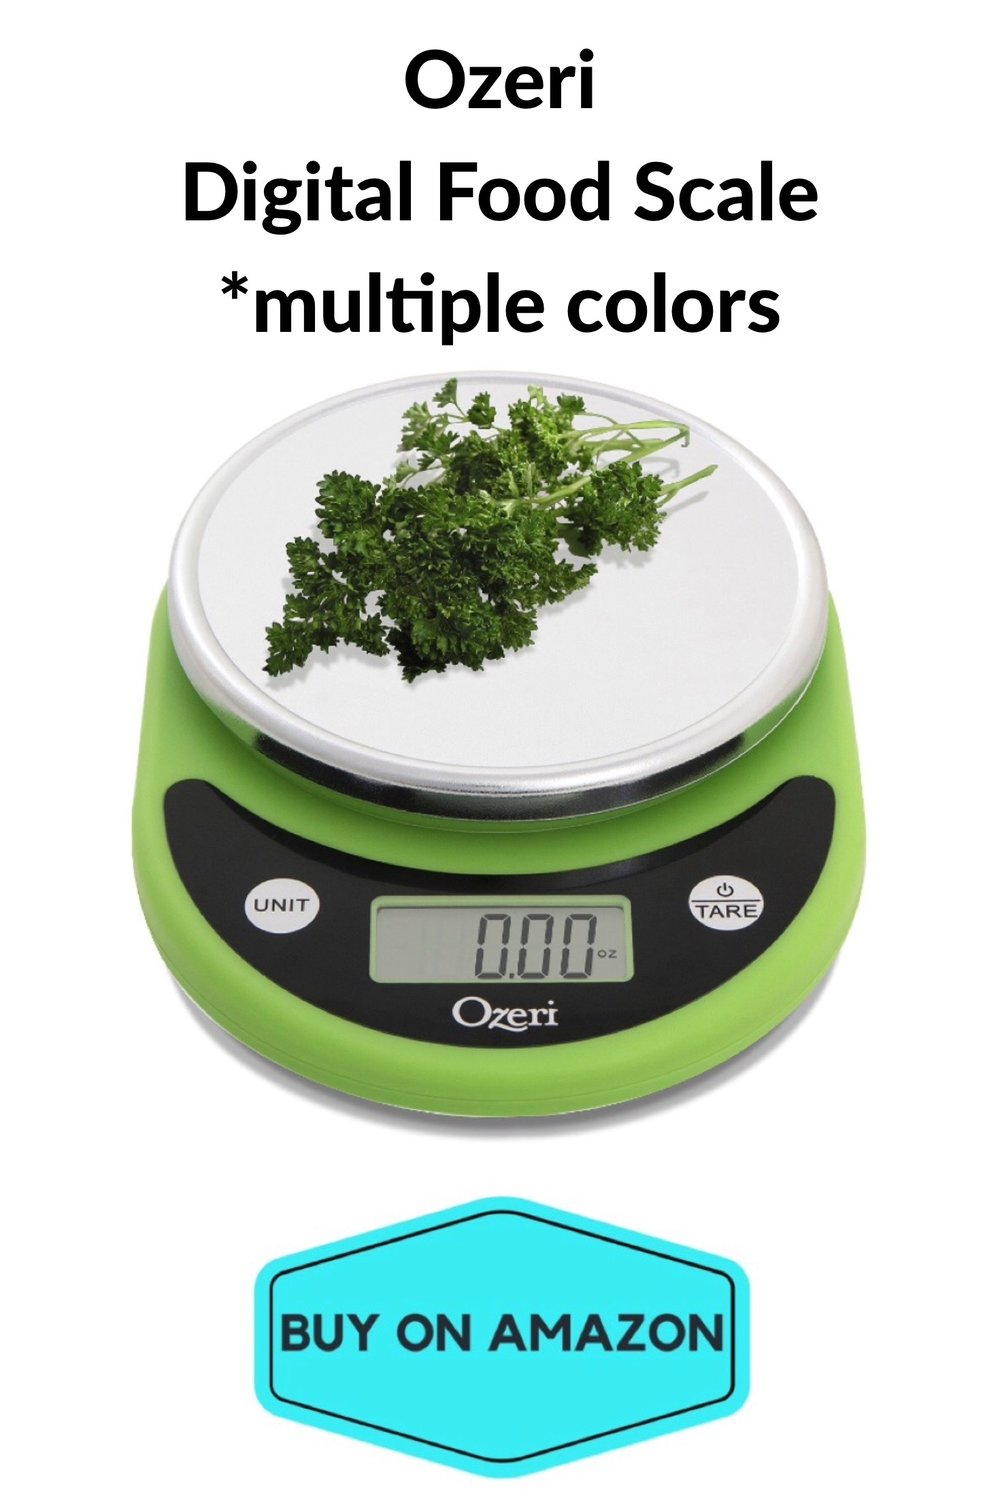 Ozeri Digital Food Scale